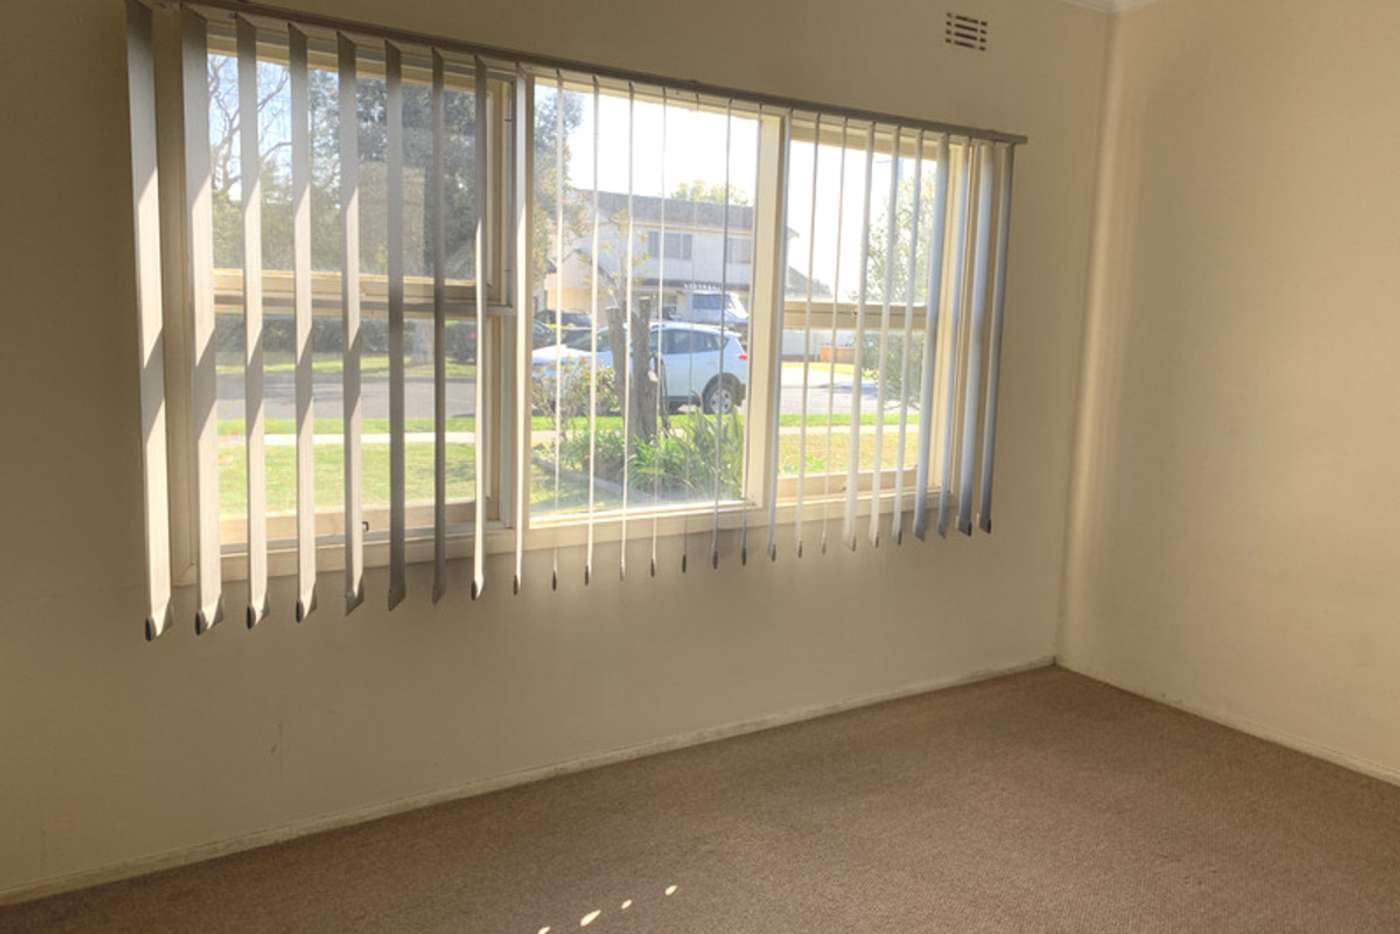 Sixth view of Homely house listing, 27 Doncaster Avenue, Narellan NSW 2567